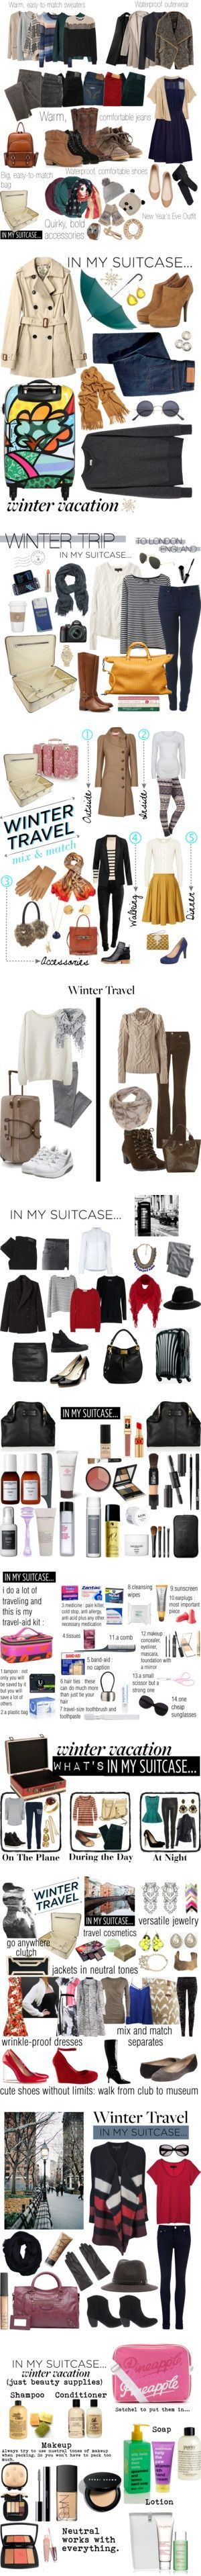 """""""Winter Travel"""" by helenmoses :heart: liked on Polyvore"""